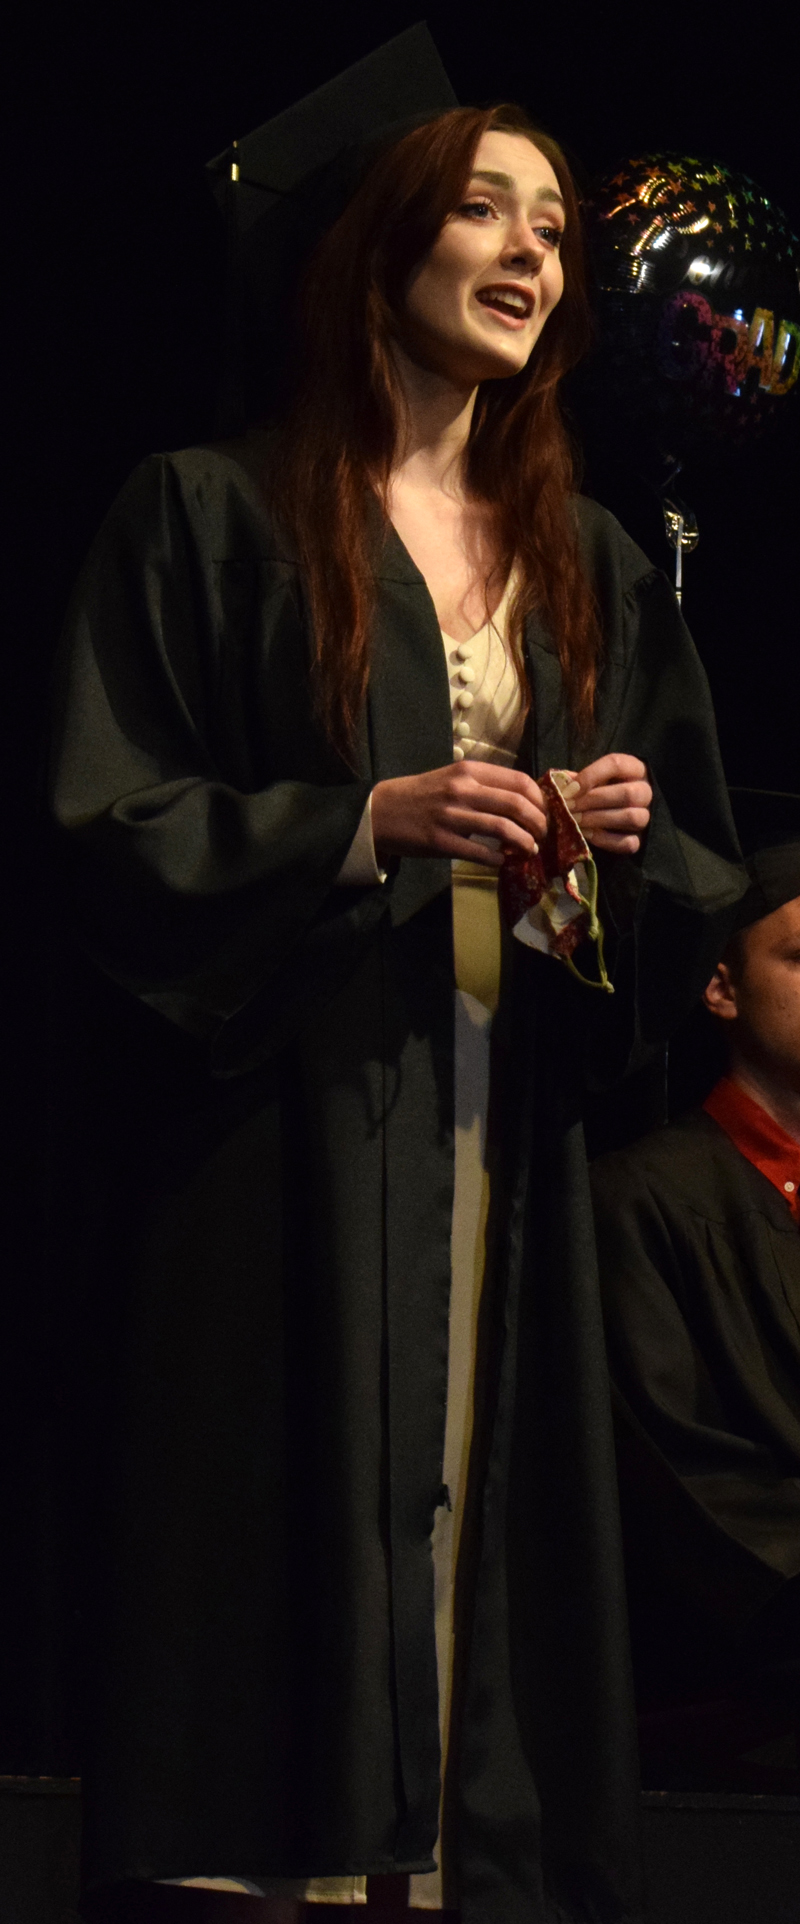 """Central Lincoln County Adult Education graduate Honora Boothby sings """"Meadowlark"""" from the musical """"The Baker's Wife"""" during a ceremony at the Lincoln Theater on Tuesday, June 8. (Evan Houk photo)"""